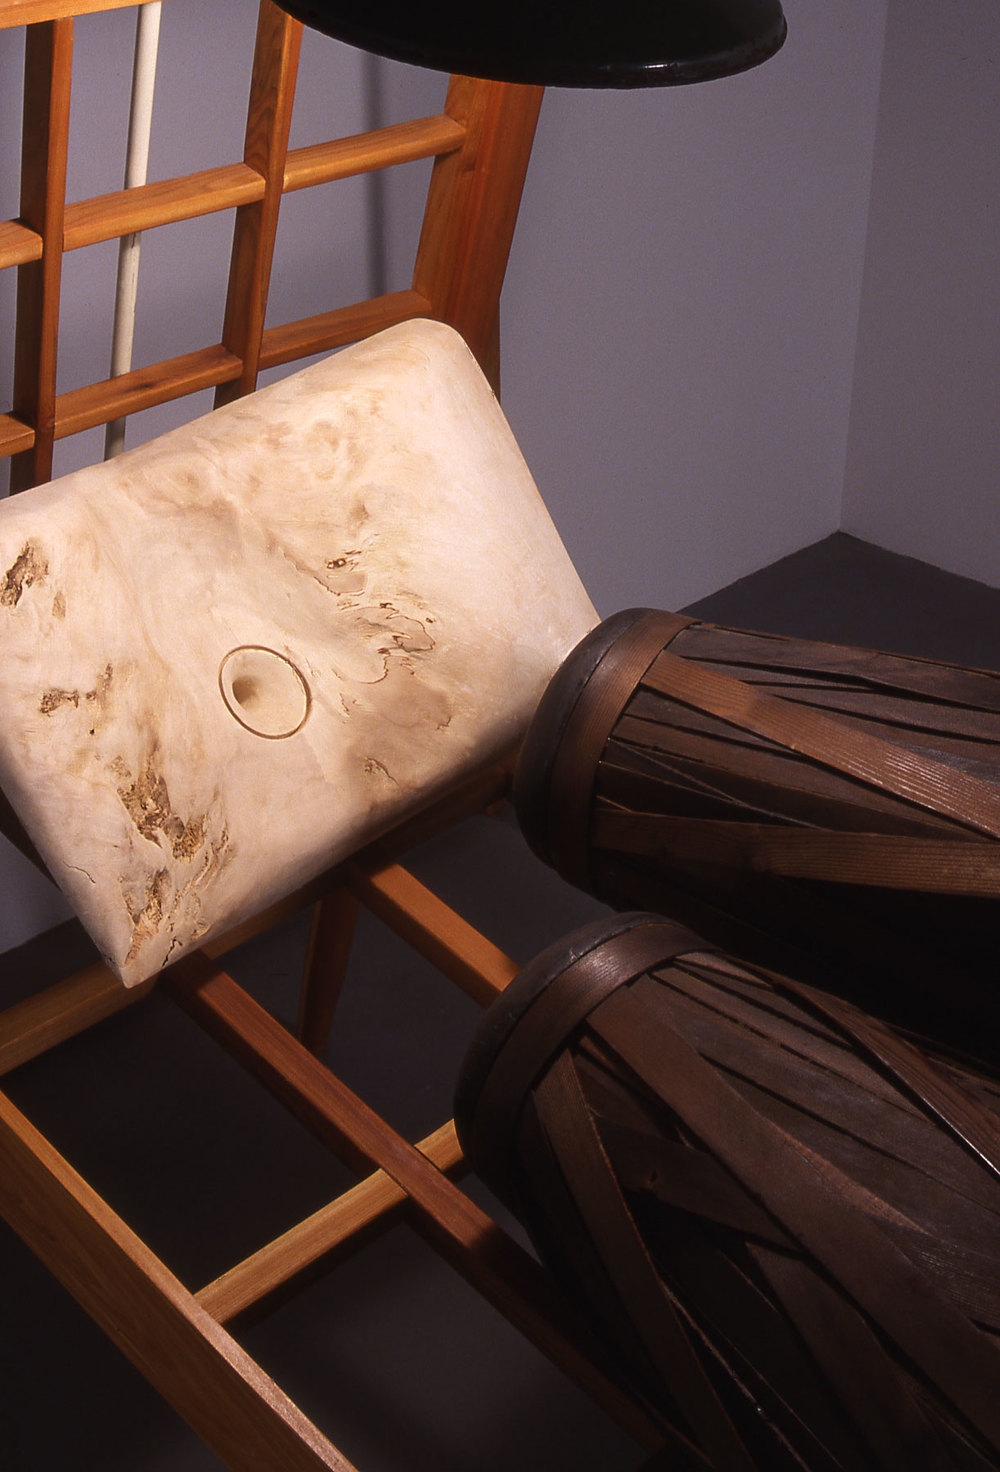 """""""Sleeping Double in a Single Bed"""", wood sculpture detail view; © Tom Gormally"""